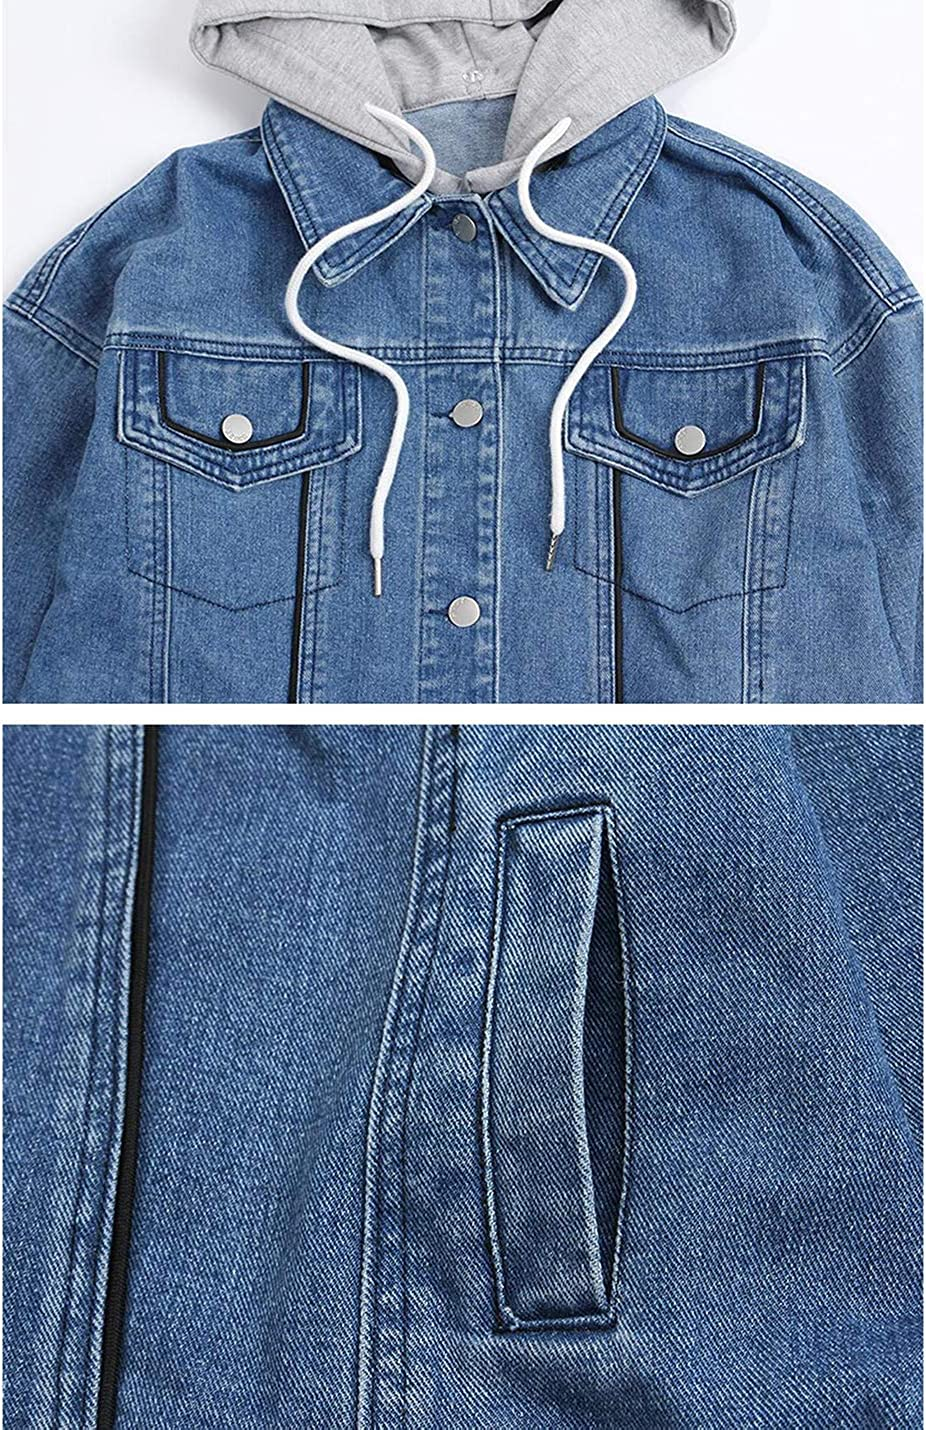 Uaneo Women's Loose Button Short Denim Jean Jacket Outerwear with Knit Hood (Blue, Large)